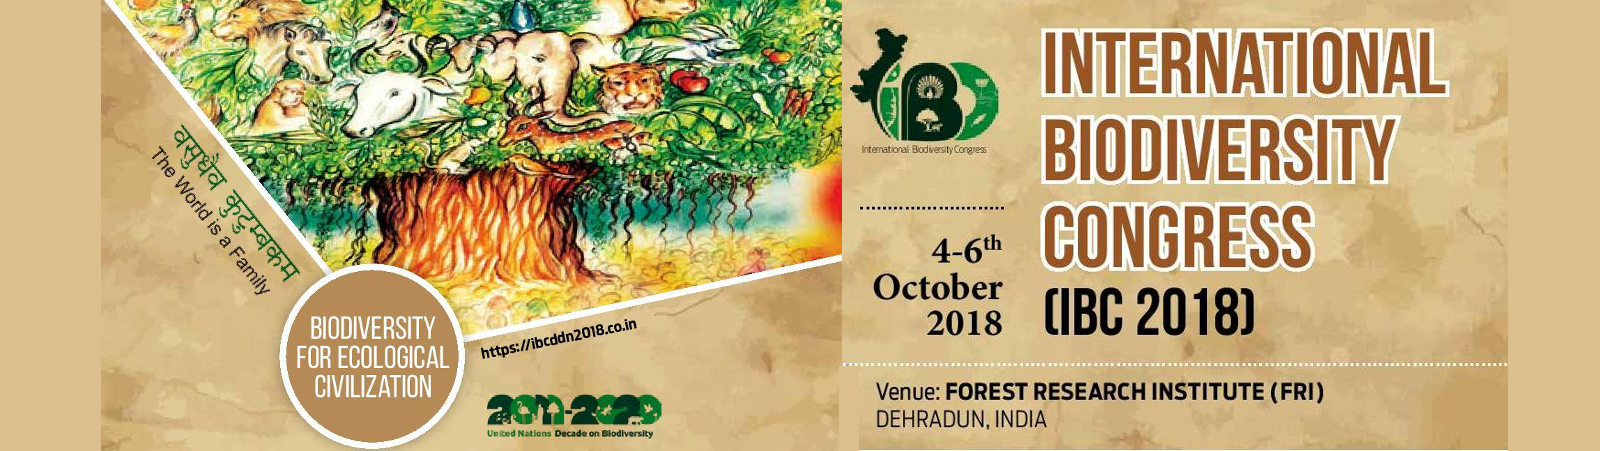 INTERNATIONAL BIODIVERSITY CONGRESS